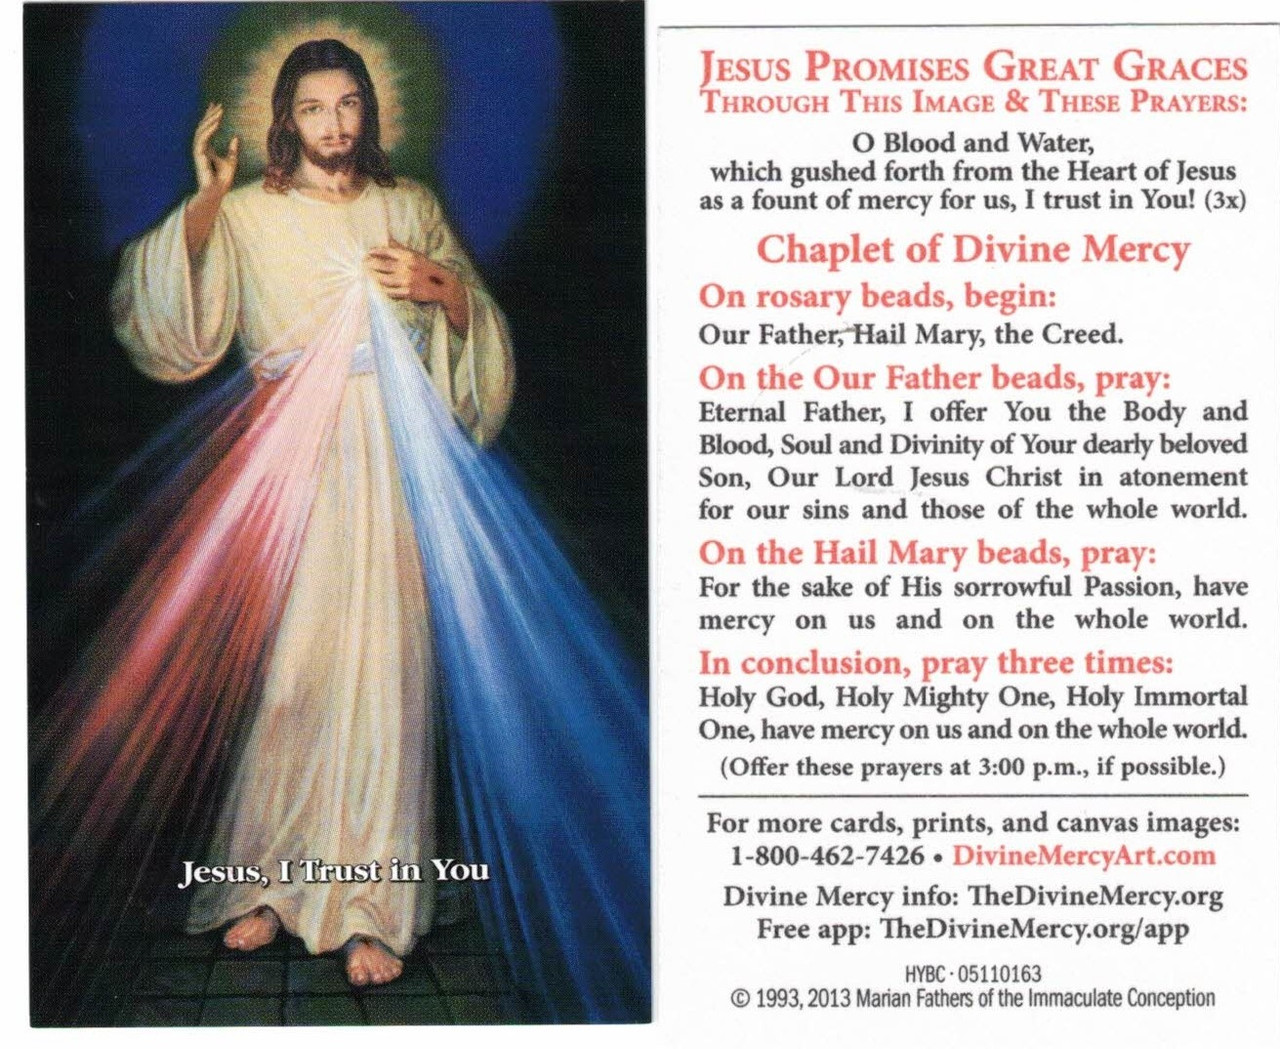 Divine Mercy Prayer Cards, 1000 card box, English, Blue background, Modern Hyla Image, Free Priority Mail Shipping to USA locations